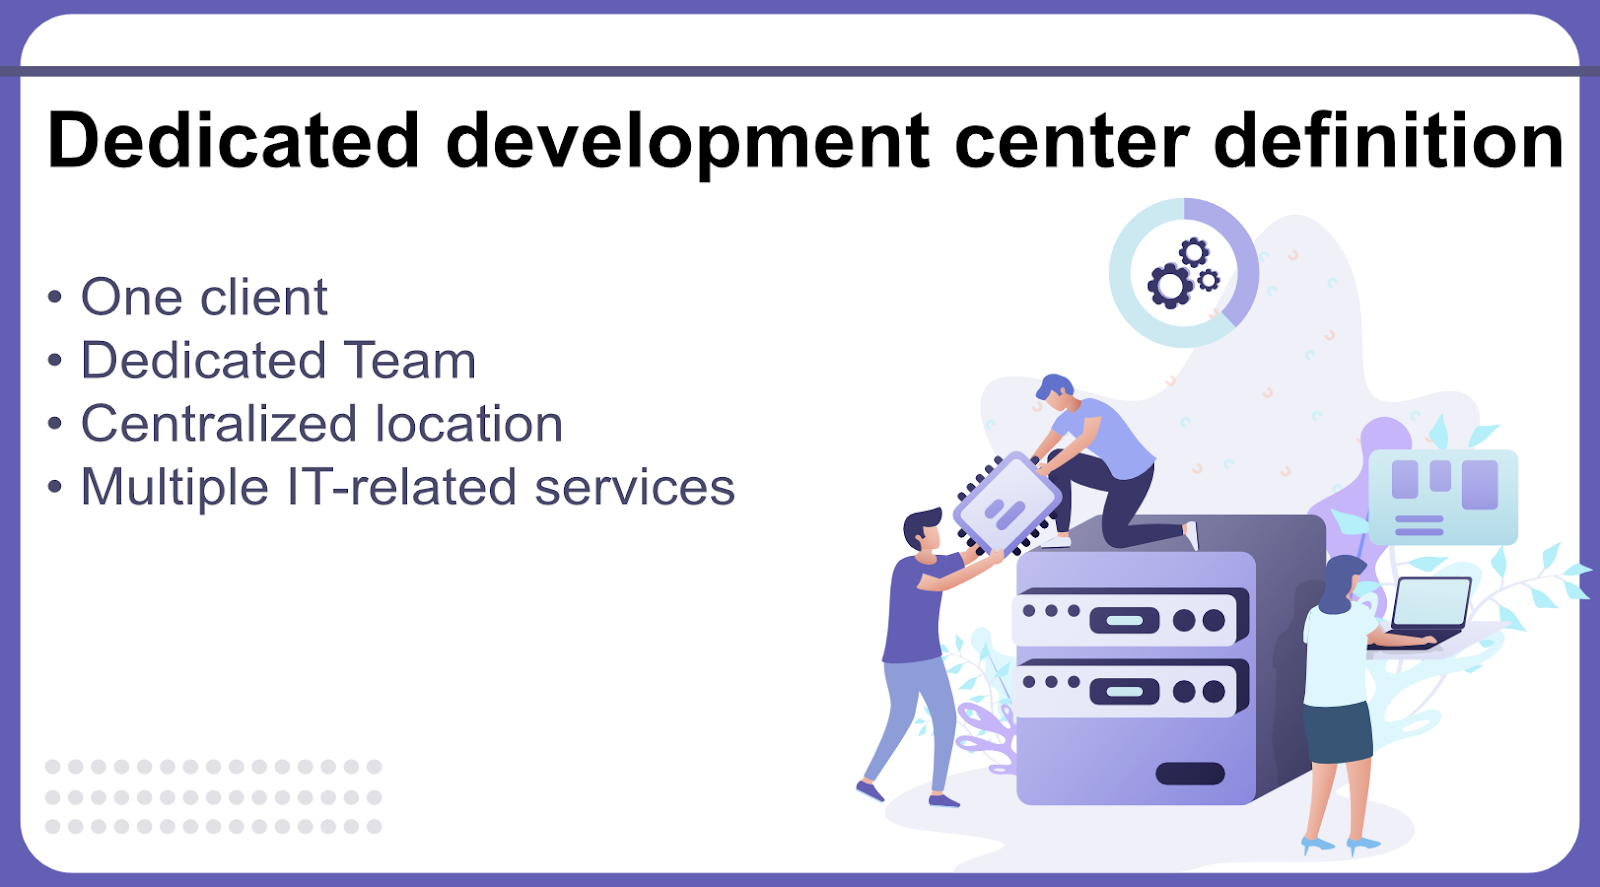 Dedicated development center definition